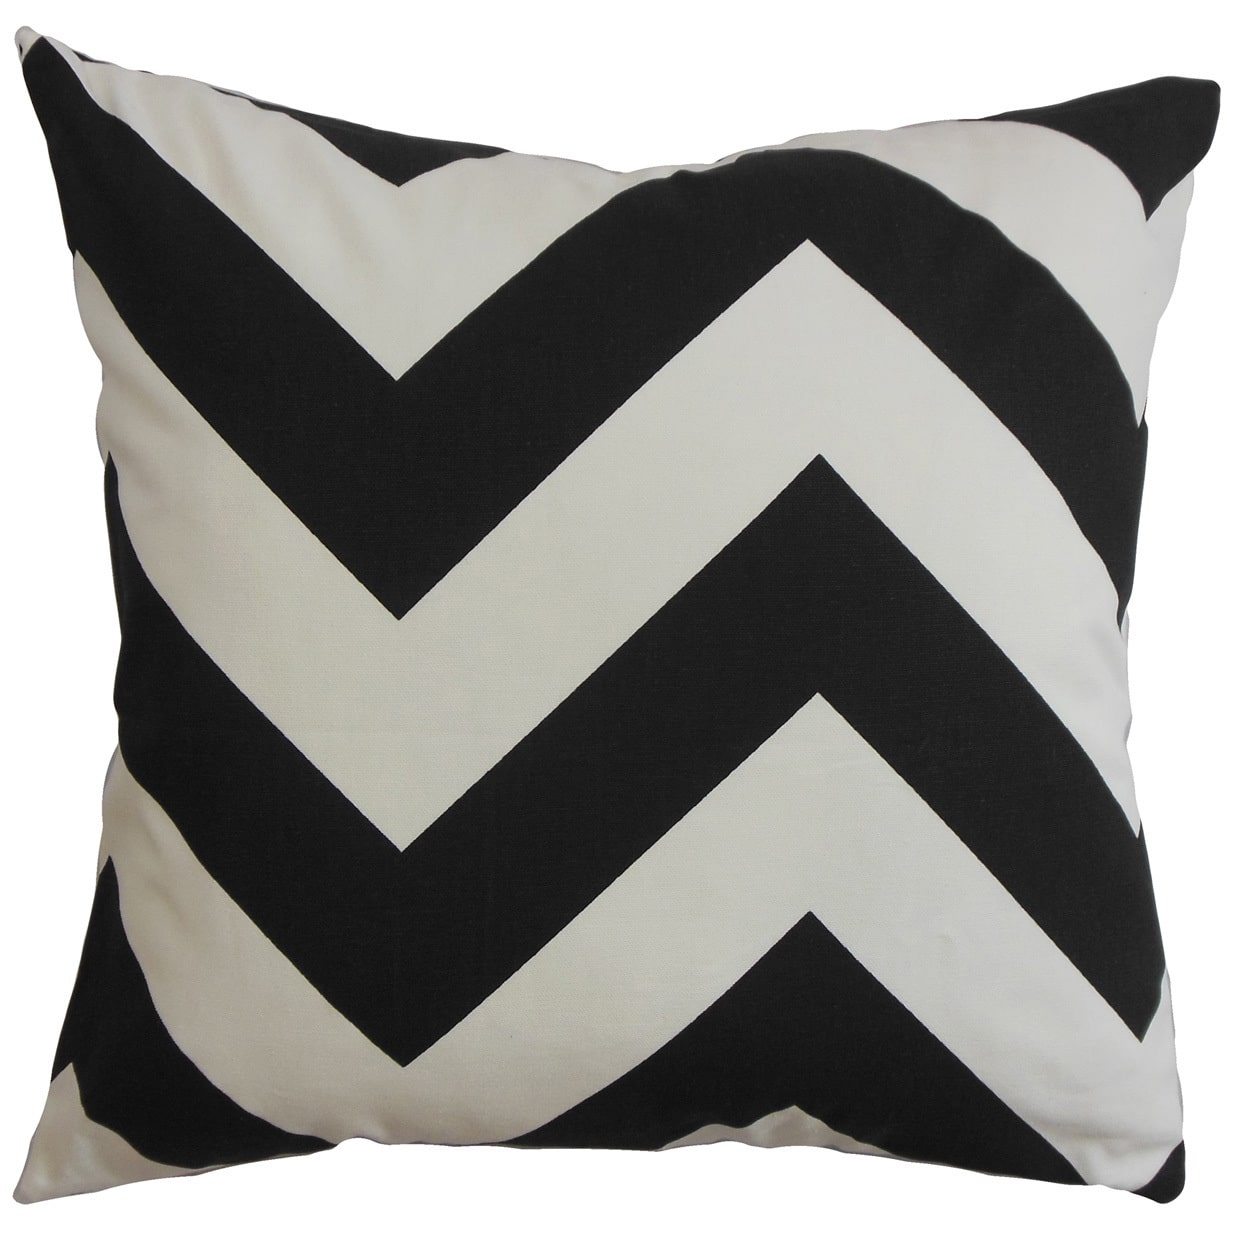 The Pillow Collection Eir Zigzag Euro Sham Black White